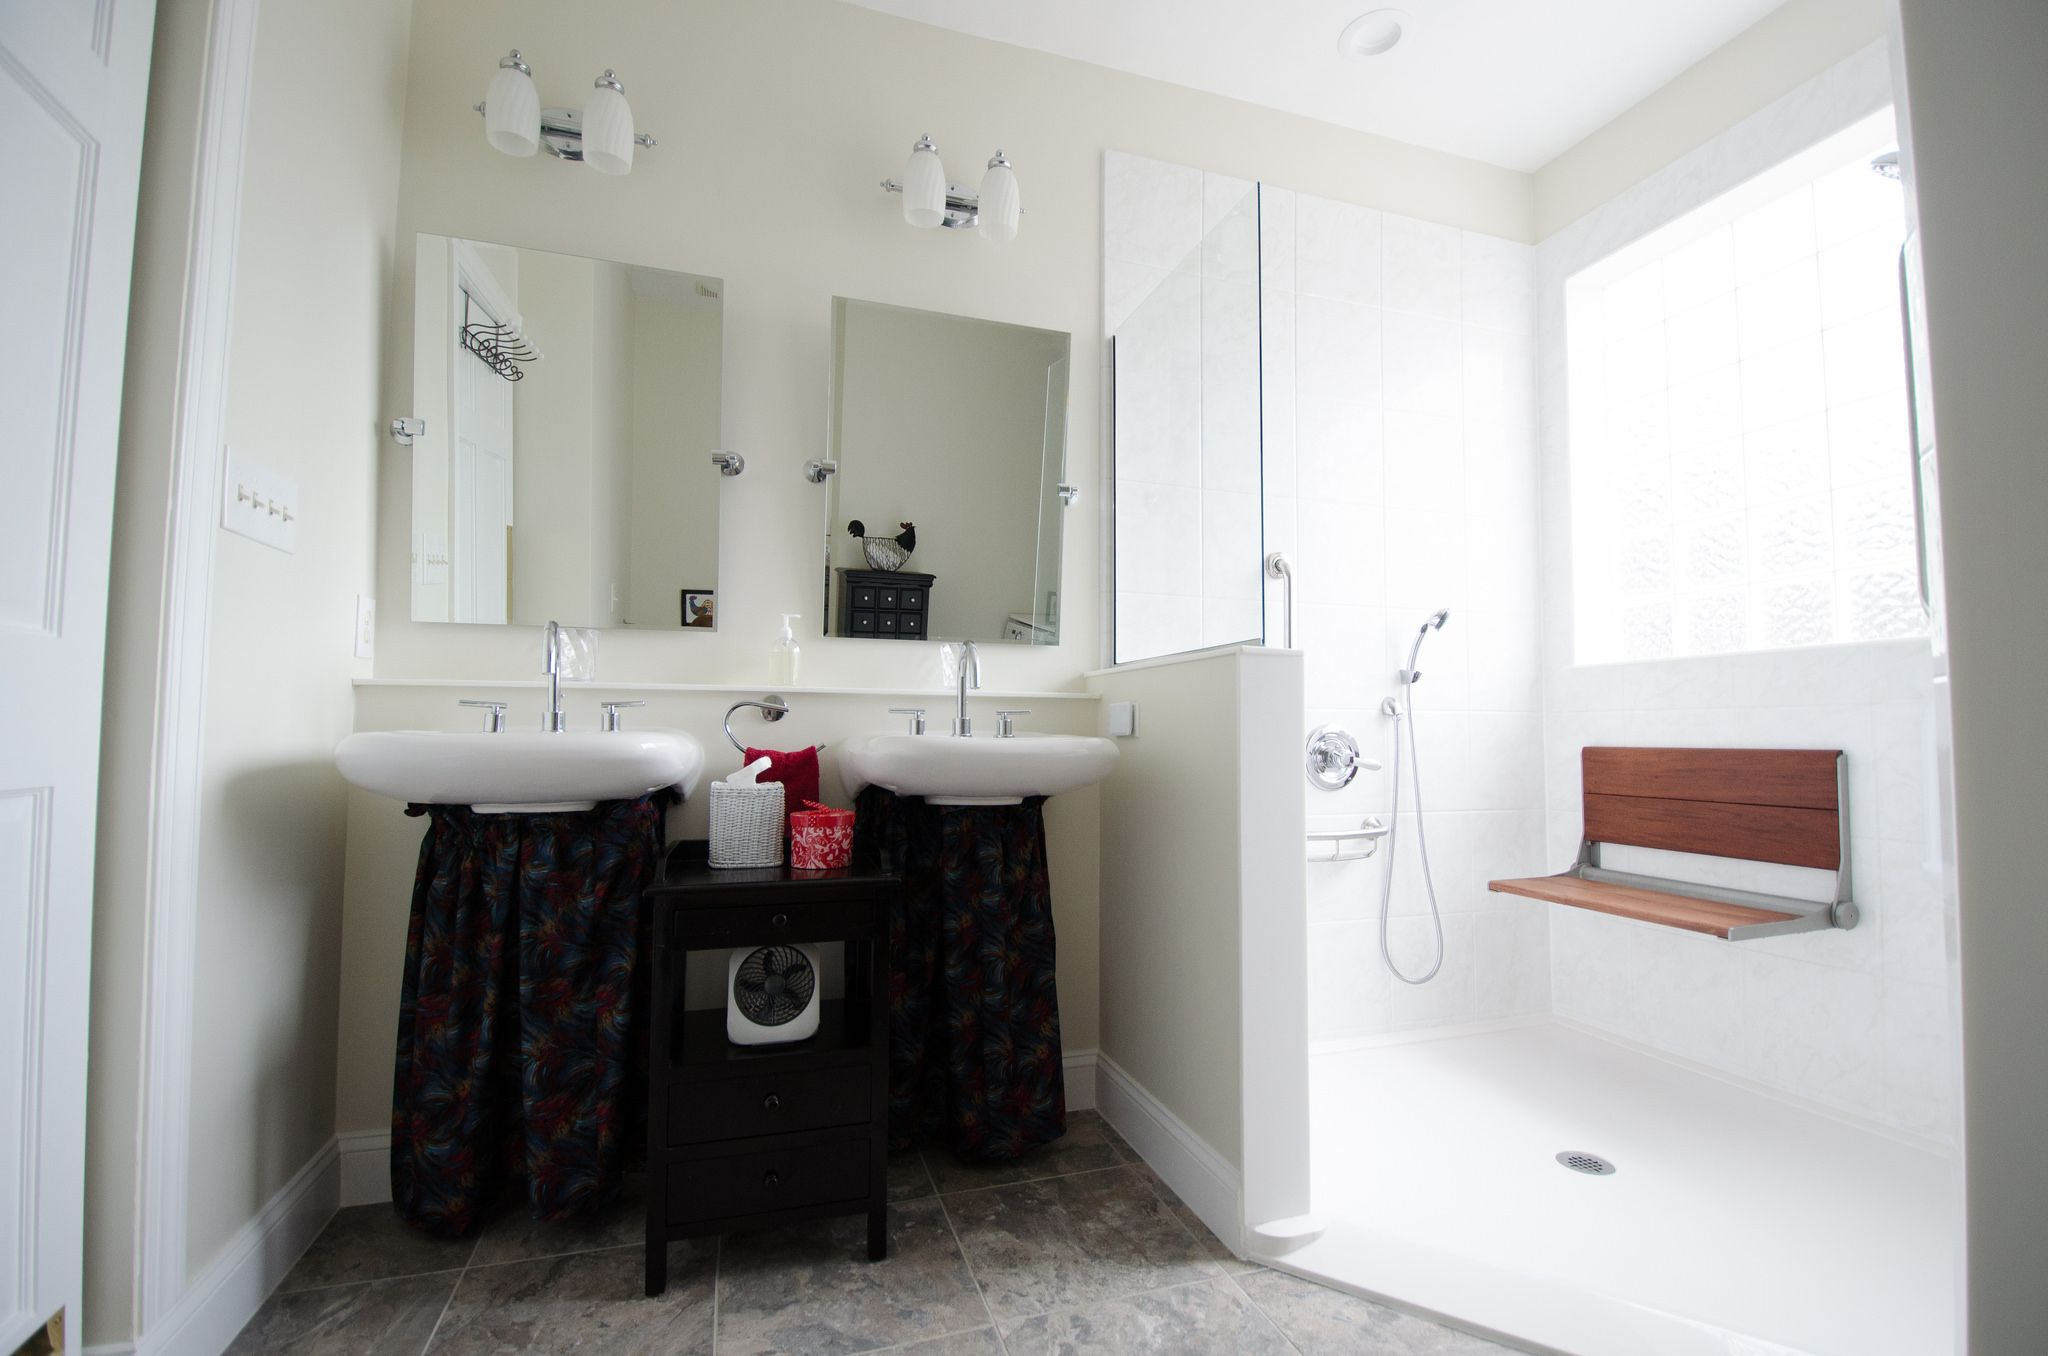 rh777 - after-0388 | Re-Bath Remodels | Pinterest | Shower seat ...